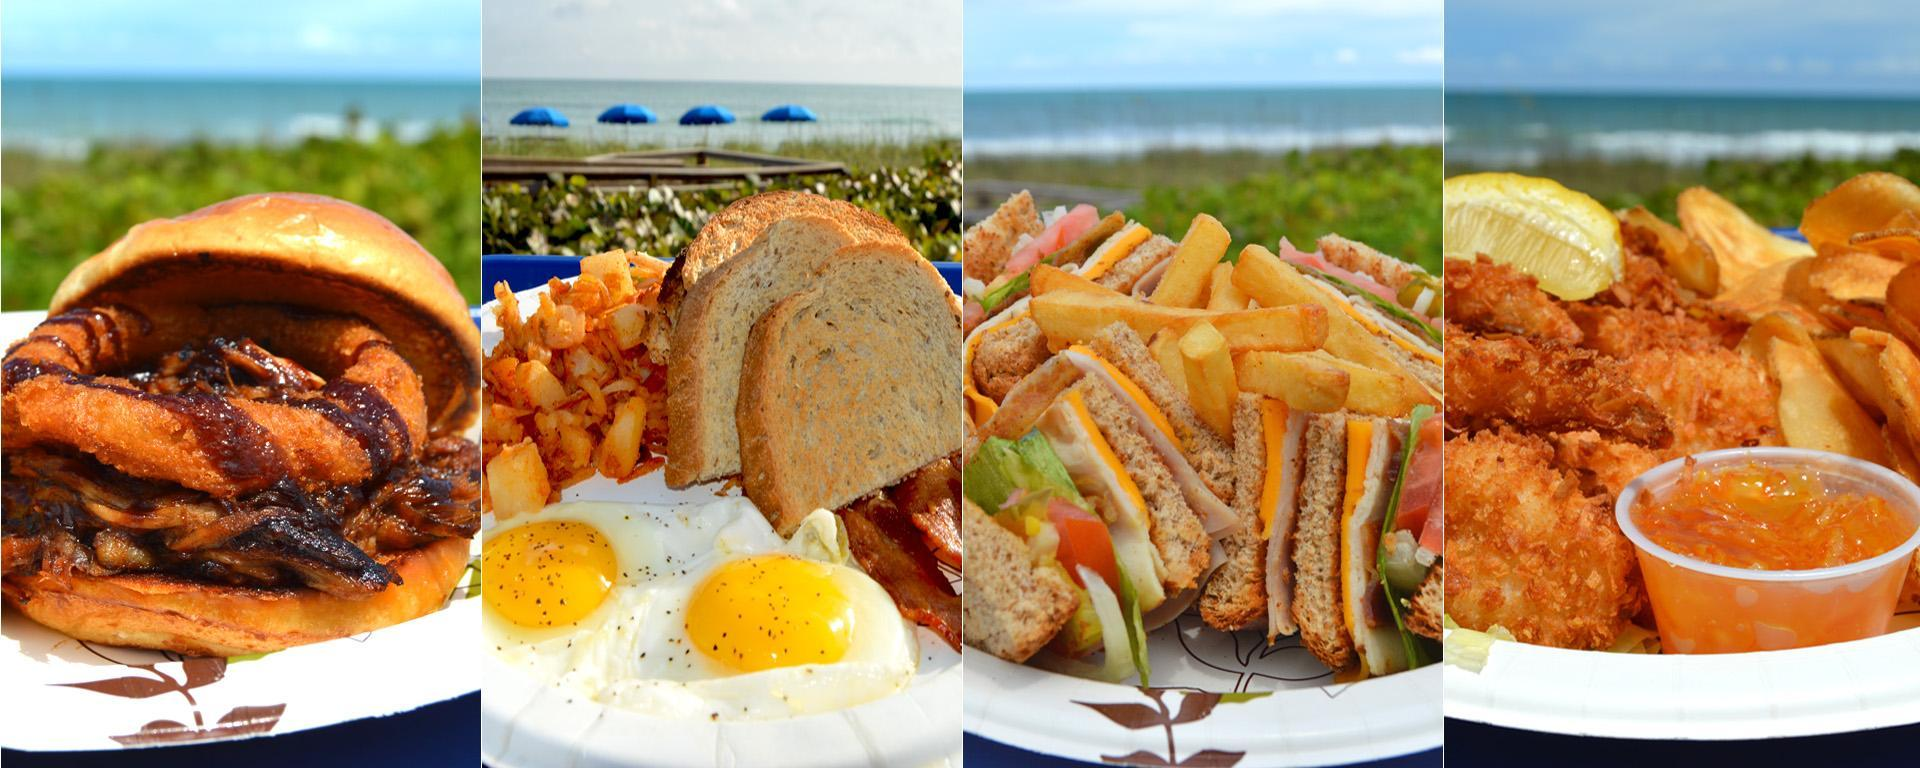 Various food selections available at sand dune cafe